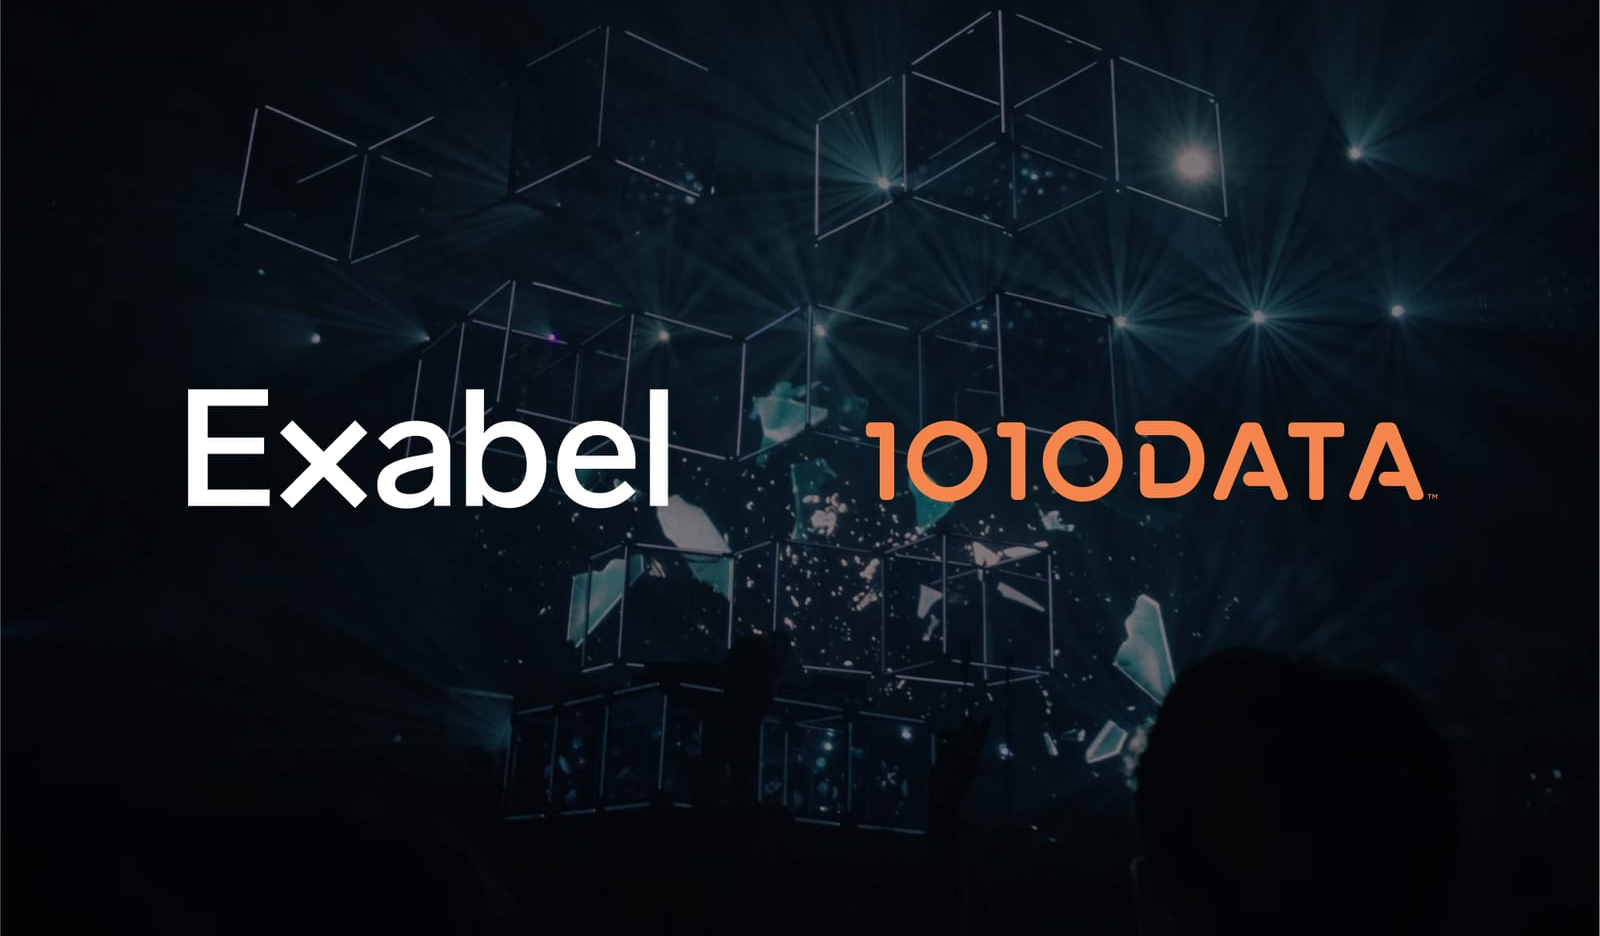 1010data and Exabel Expand Partnership to Provide Enhanced Alternative Data Solution for Hedge Funds and Asset Managers